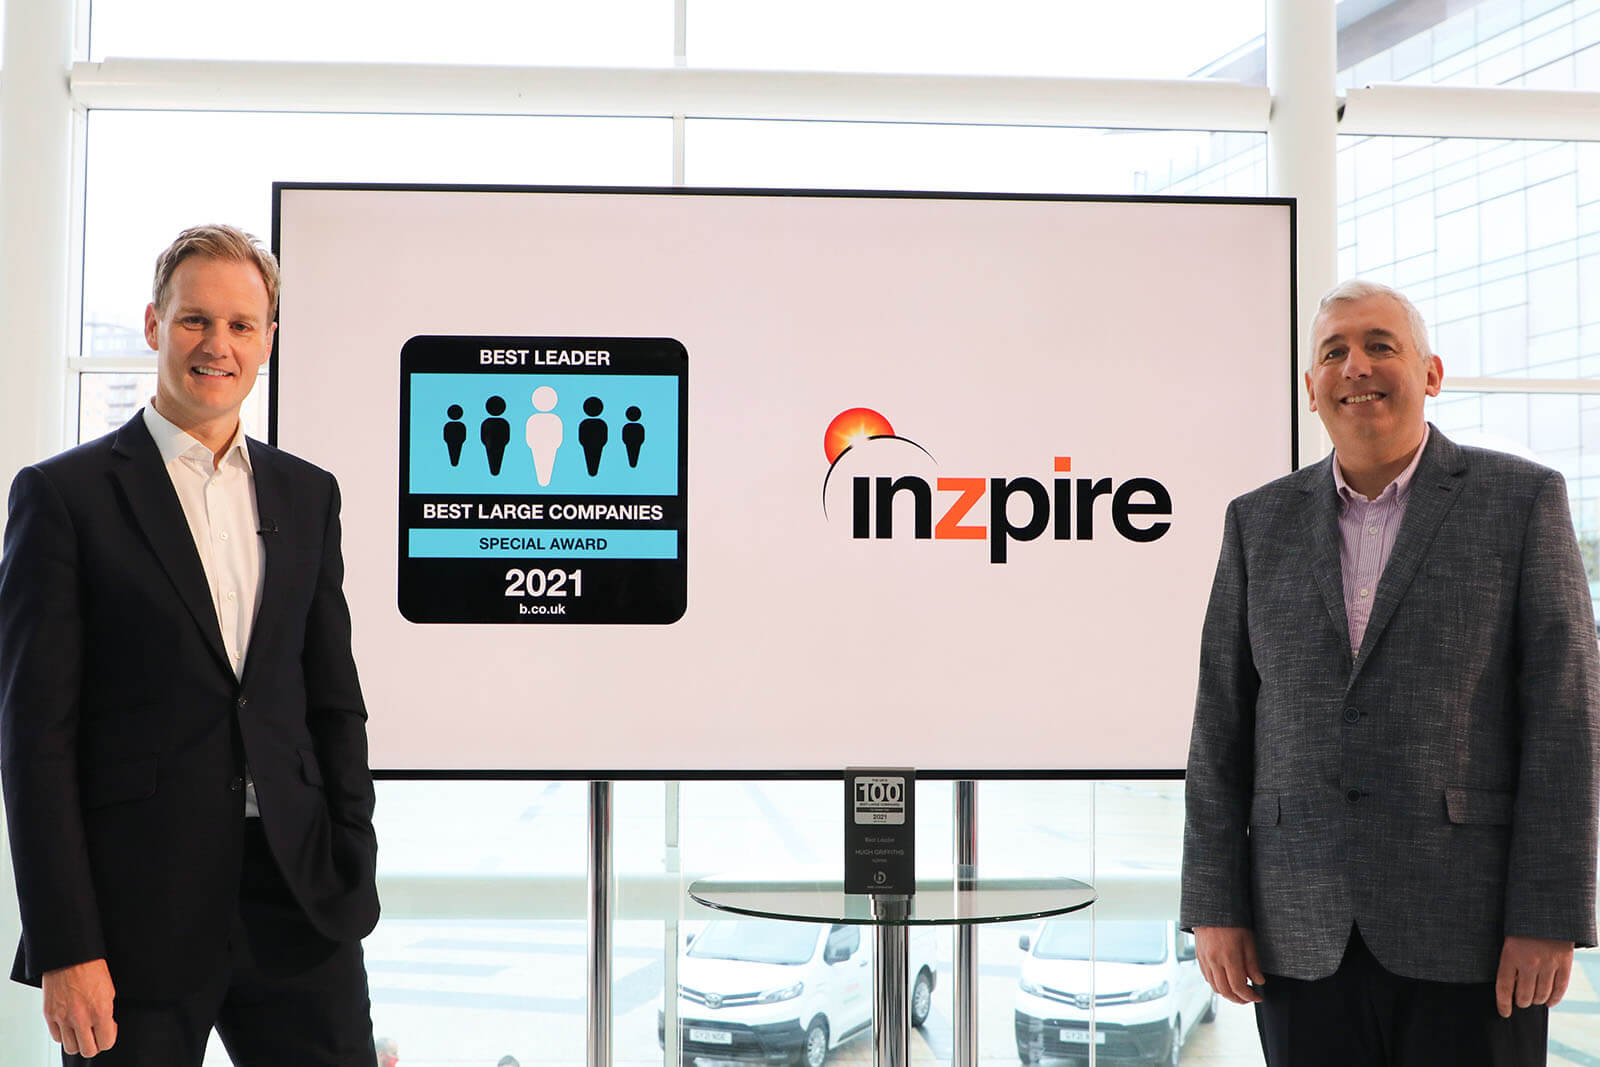 CEO of Inzpire Hugh Griffiths with Presenter Dank Walker and the Best Leader Special Award at Best Companies Live